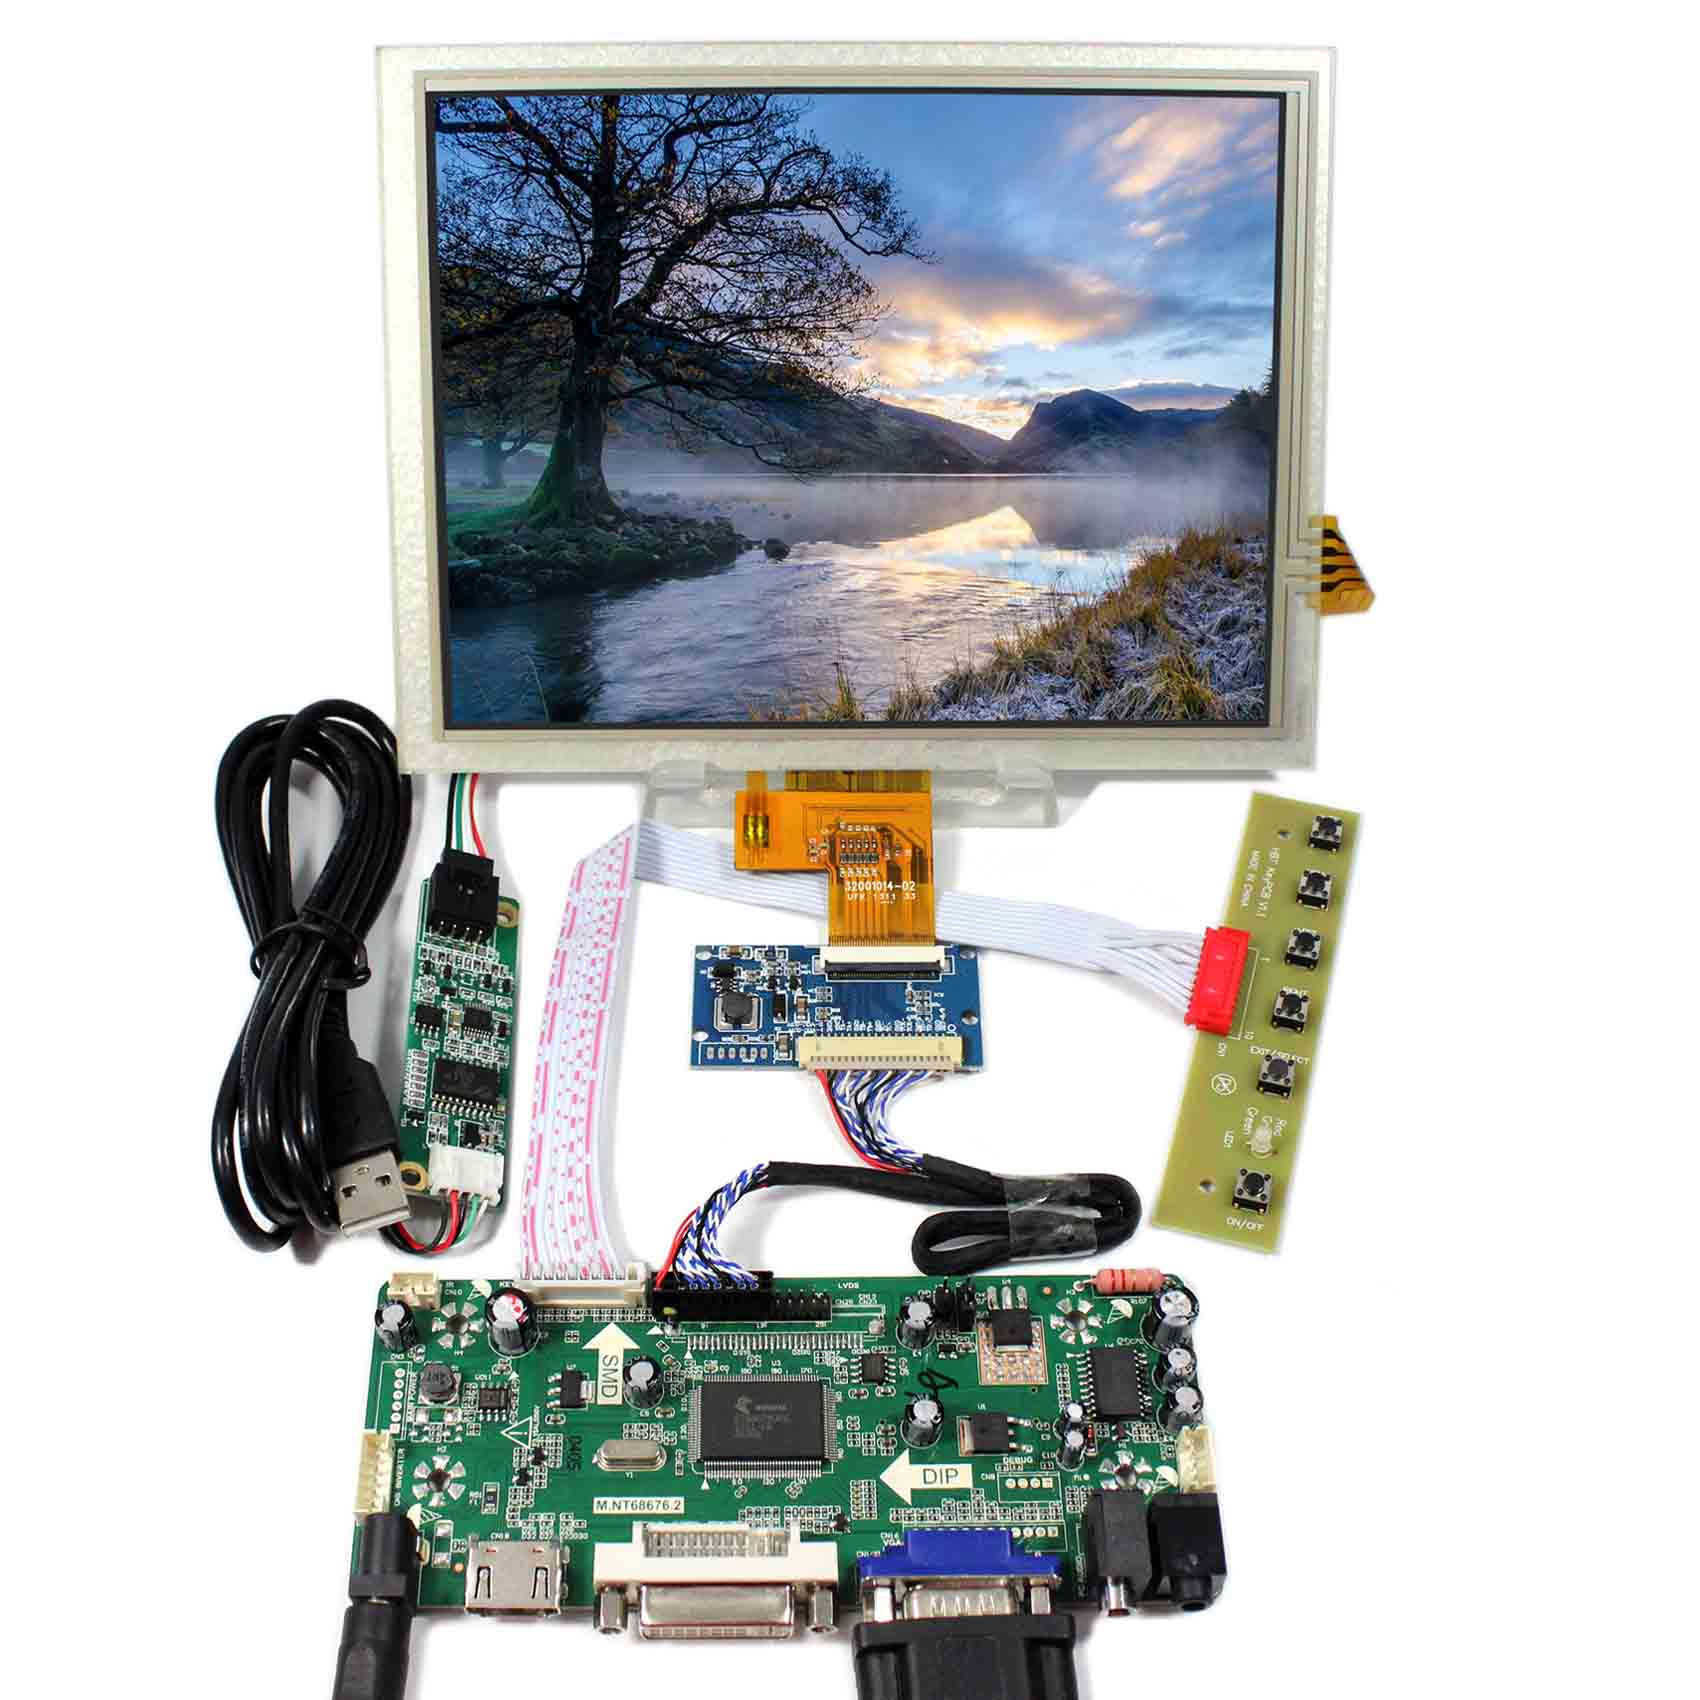 HDMI+VGA+DVI+Audio Controller Board With 8inch 1024x768 EJ080NA-04C Touch LCD Screen hdmi vga av audio usb lcd controller board 8inch 800x600 ej080na 05a lcd screen